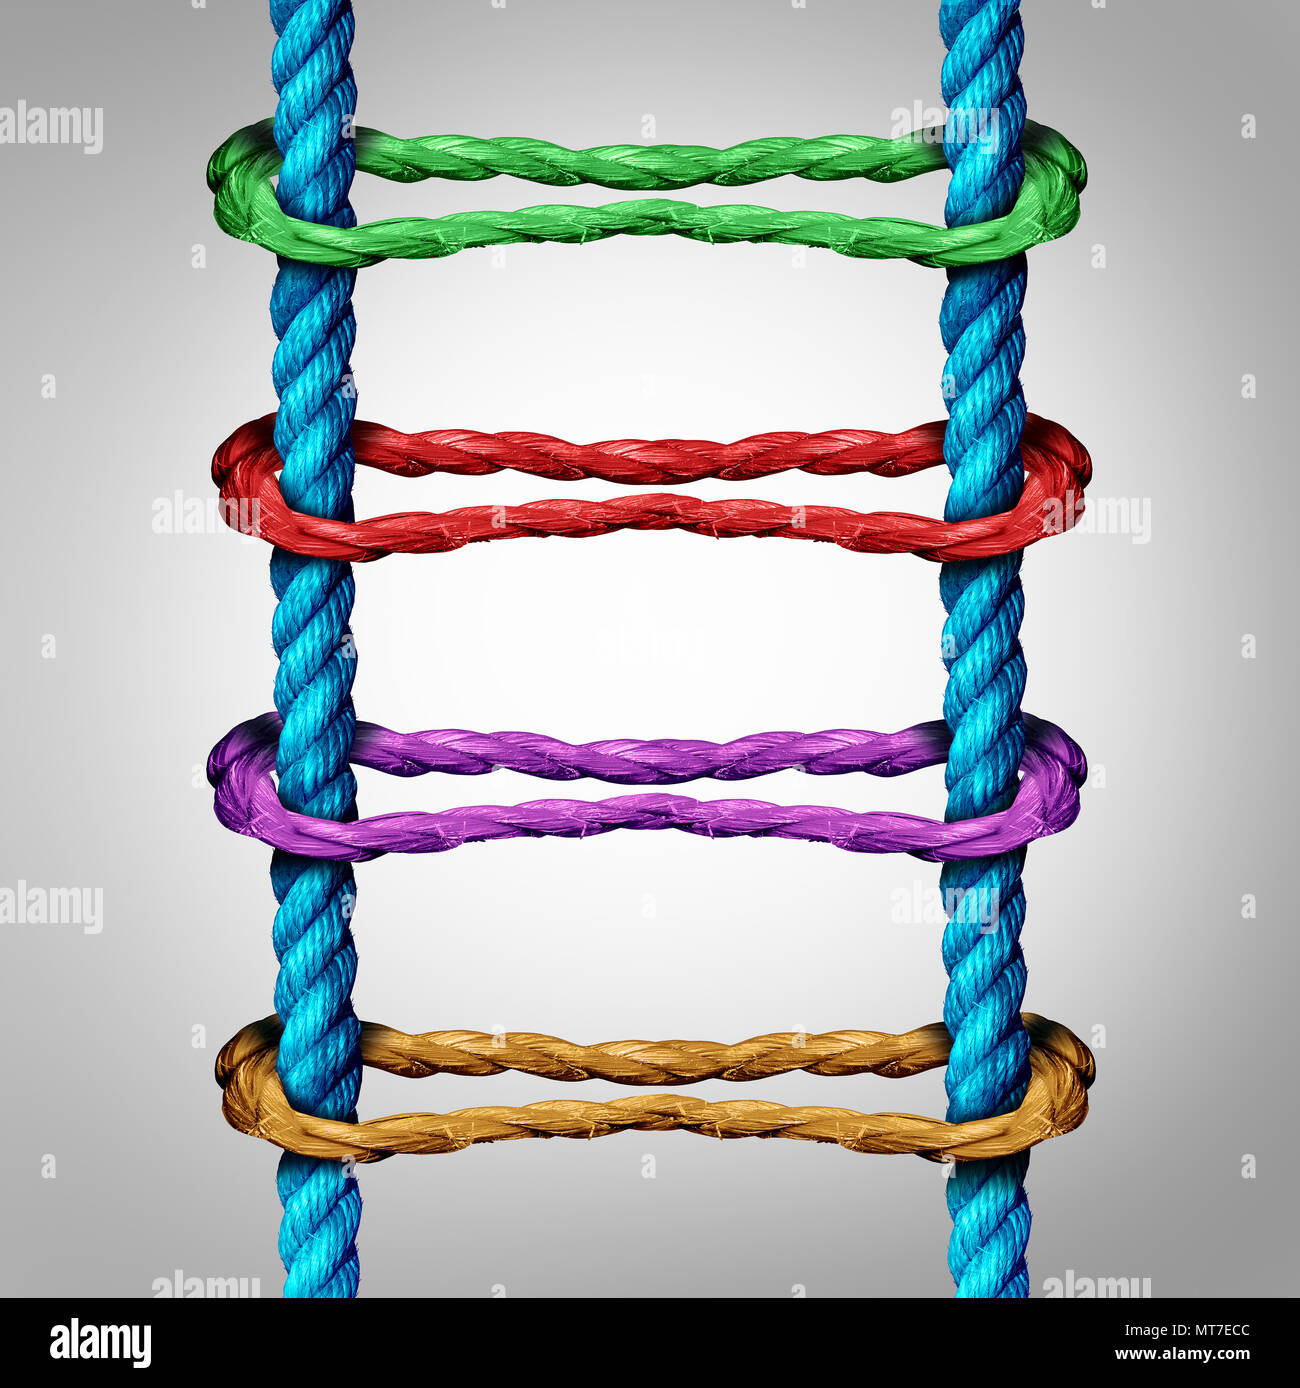 Ladder connection as a central network business concept as a group of diverse ropes connected to parallel ropes as a metaphor for connectivity. - Stock Image